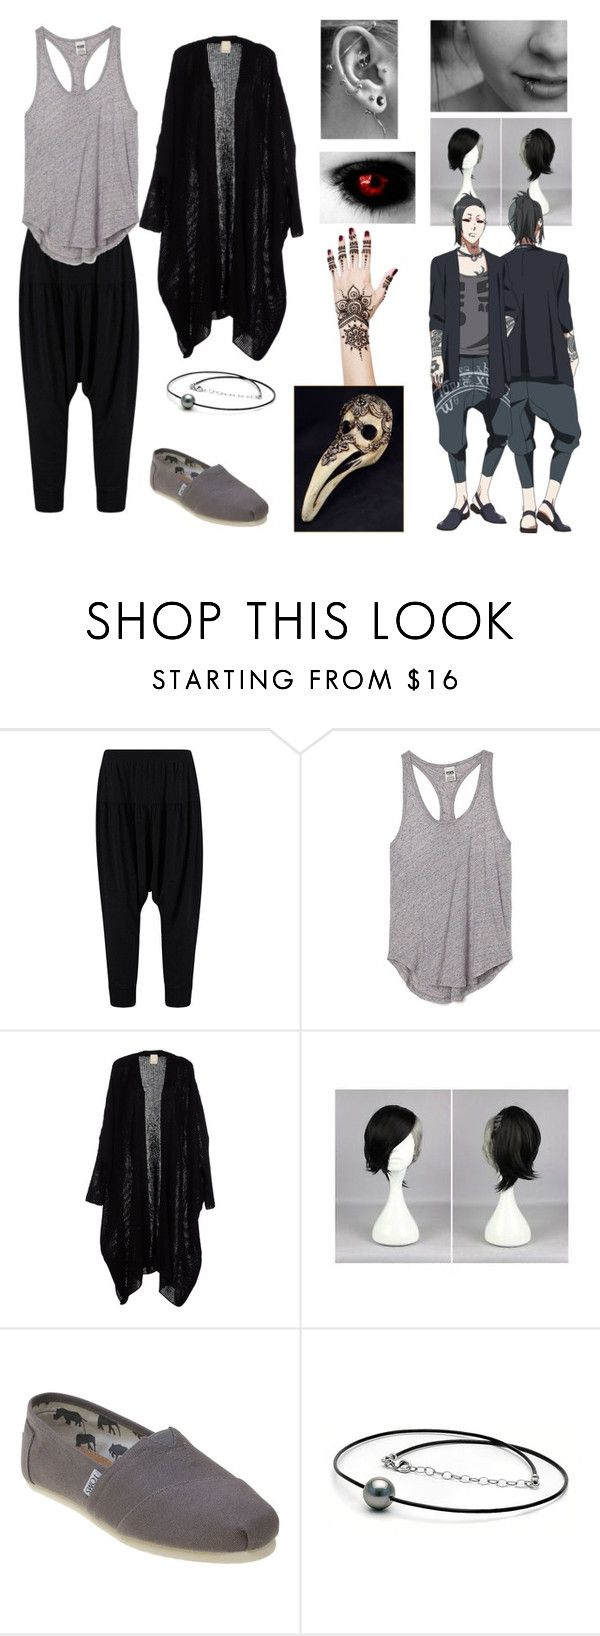 """Uta (Tokyo Ghoul)"" by fallenangelsstillsing ❤ liked on Polyvore featuring Victoria's Secret PINK and TOMS"